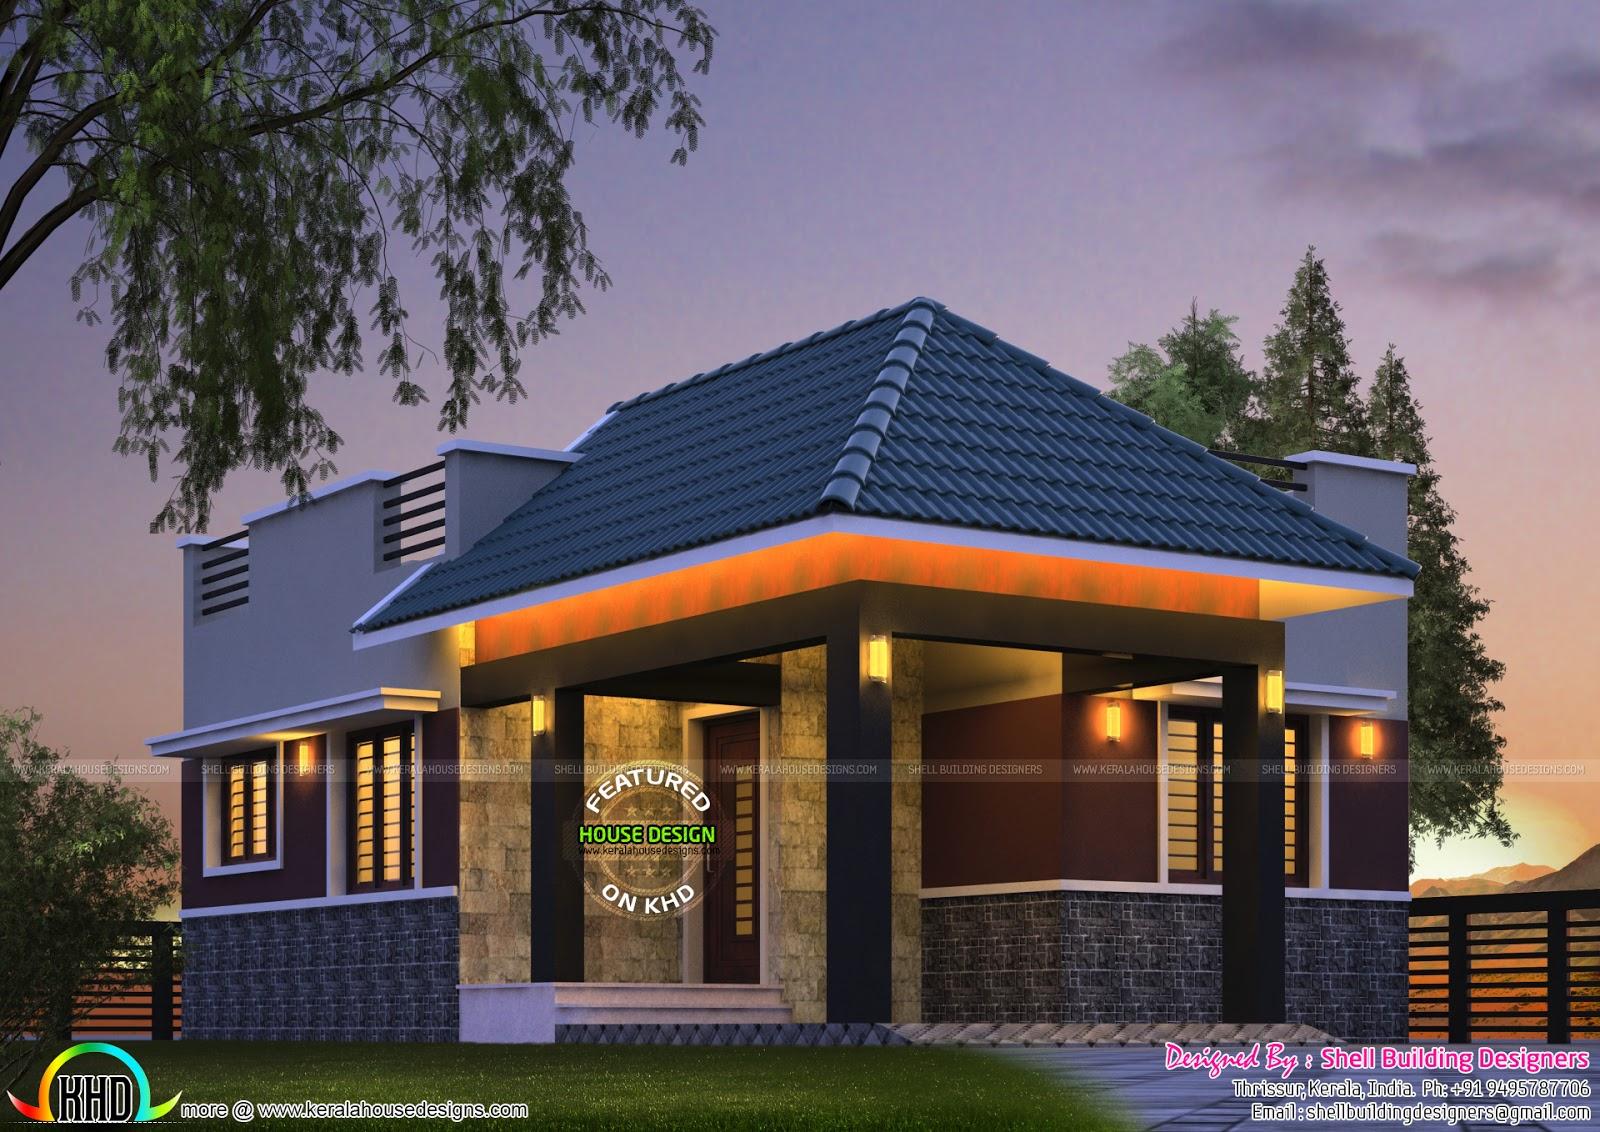 Tiny kerala home design kerala home design and floor plans for Kerala small house designs